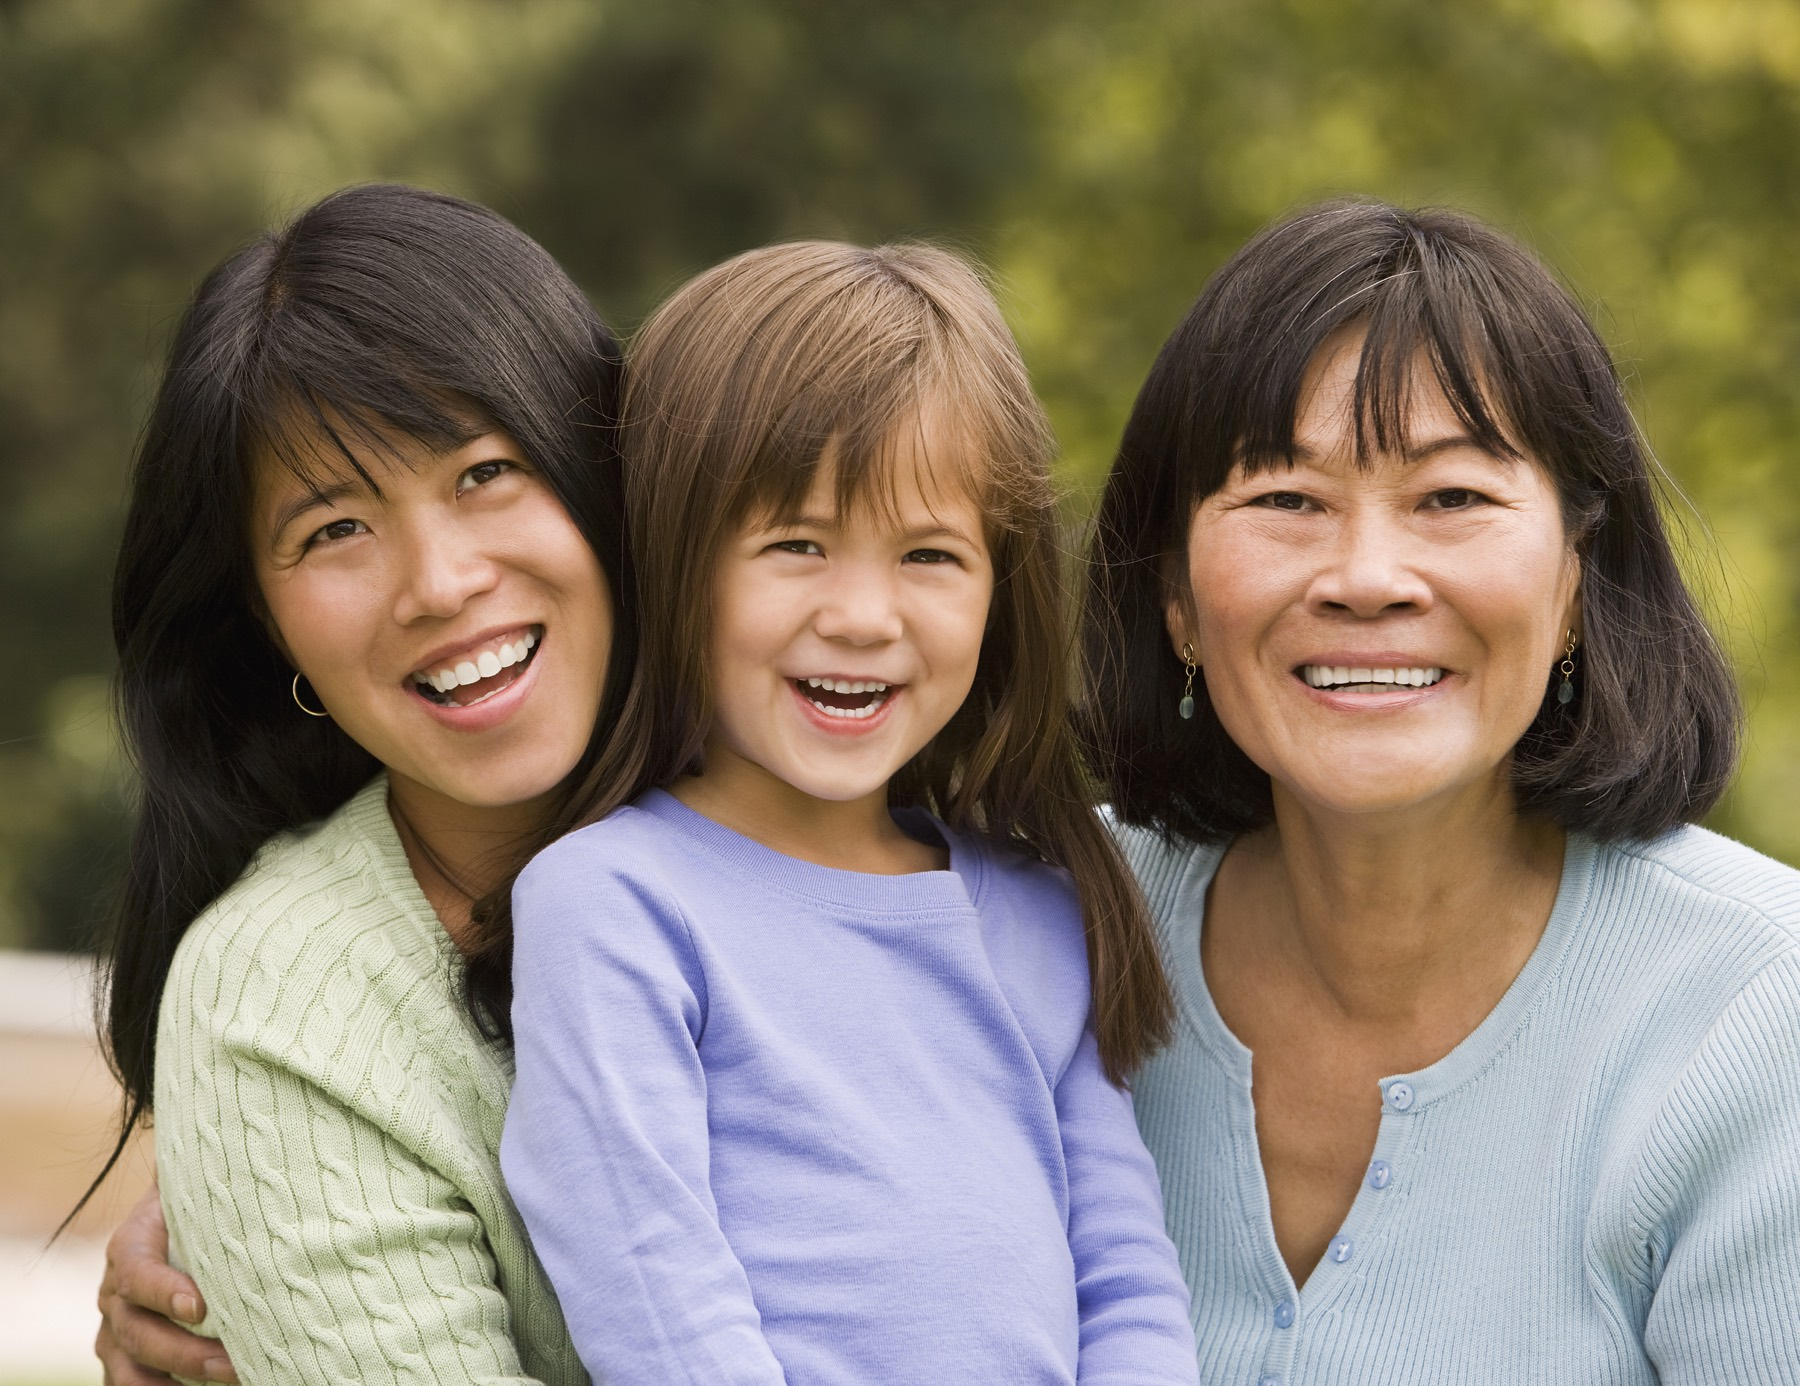 bigstock-Portrait-of-multi-generational-733578612-1